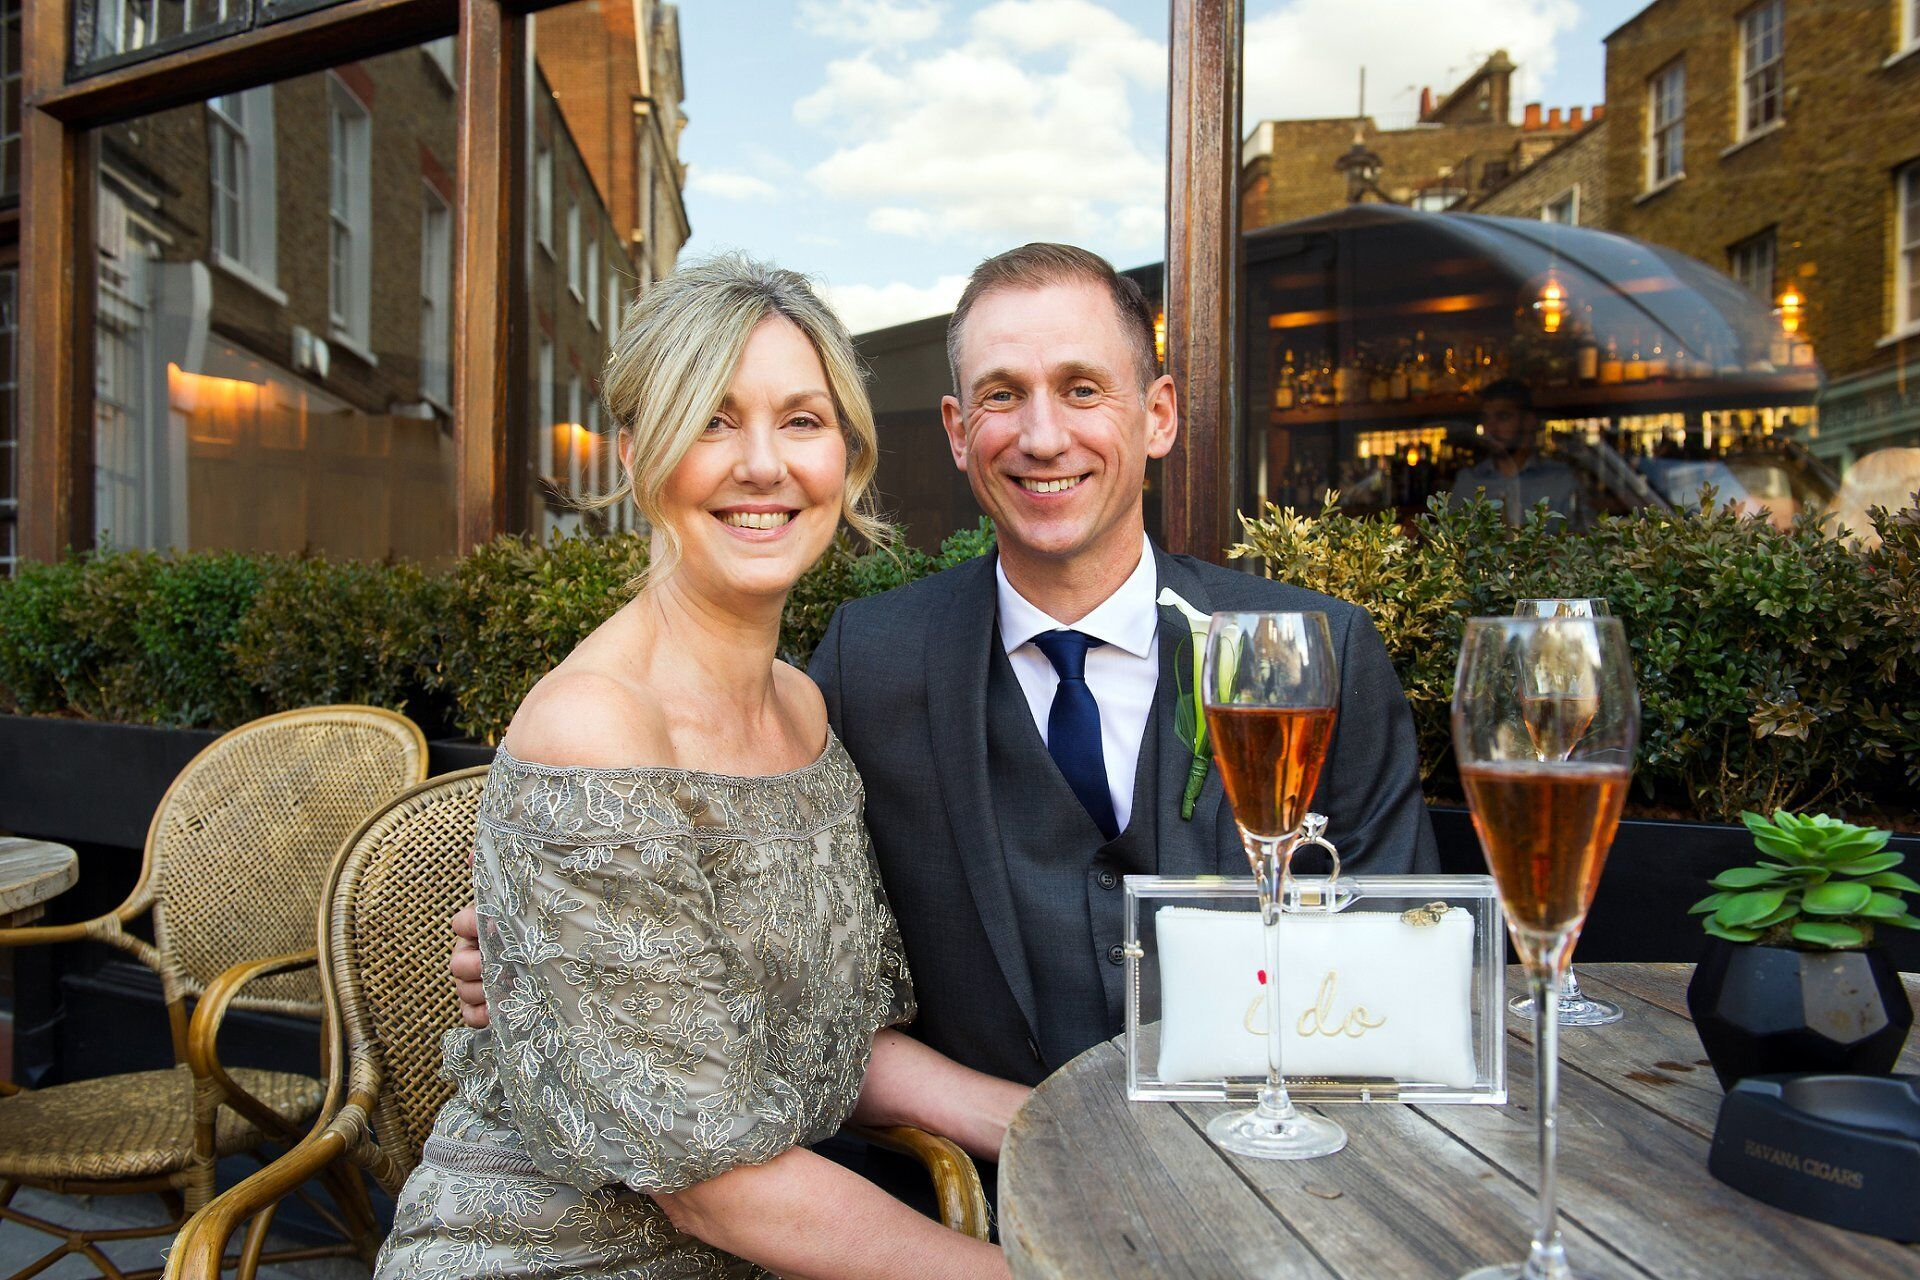 brenda and michael pose with pink champagne outside the harcourt just off york street in marylebone after their westminster registry office wedding